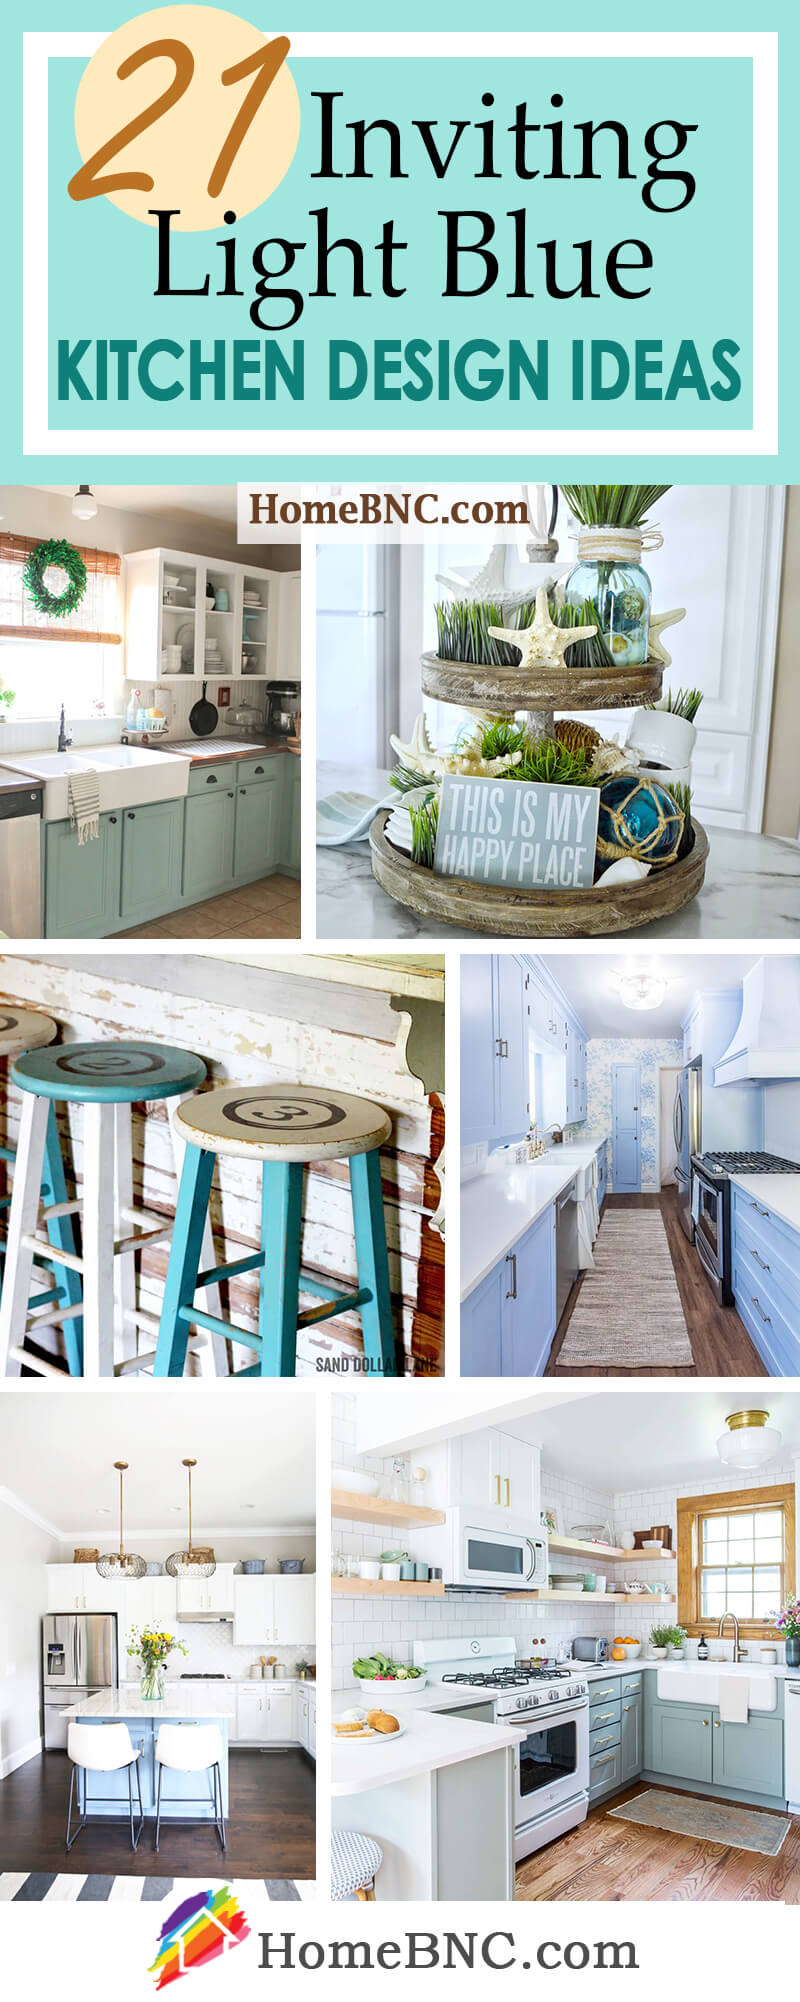 Light Blue Kitchen Design and Decor Ideas